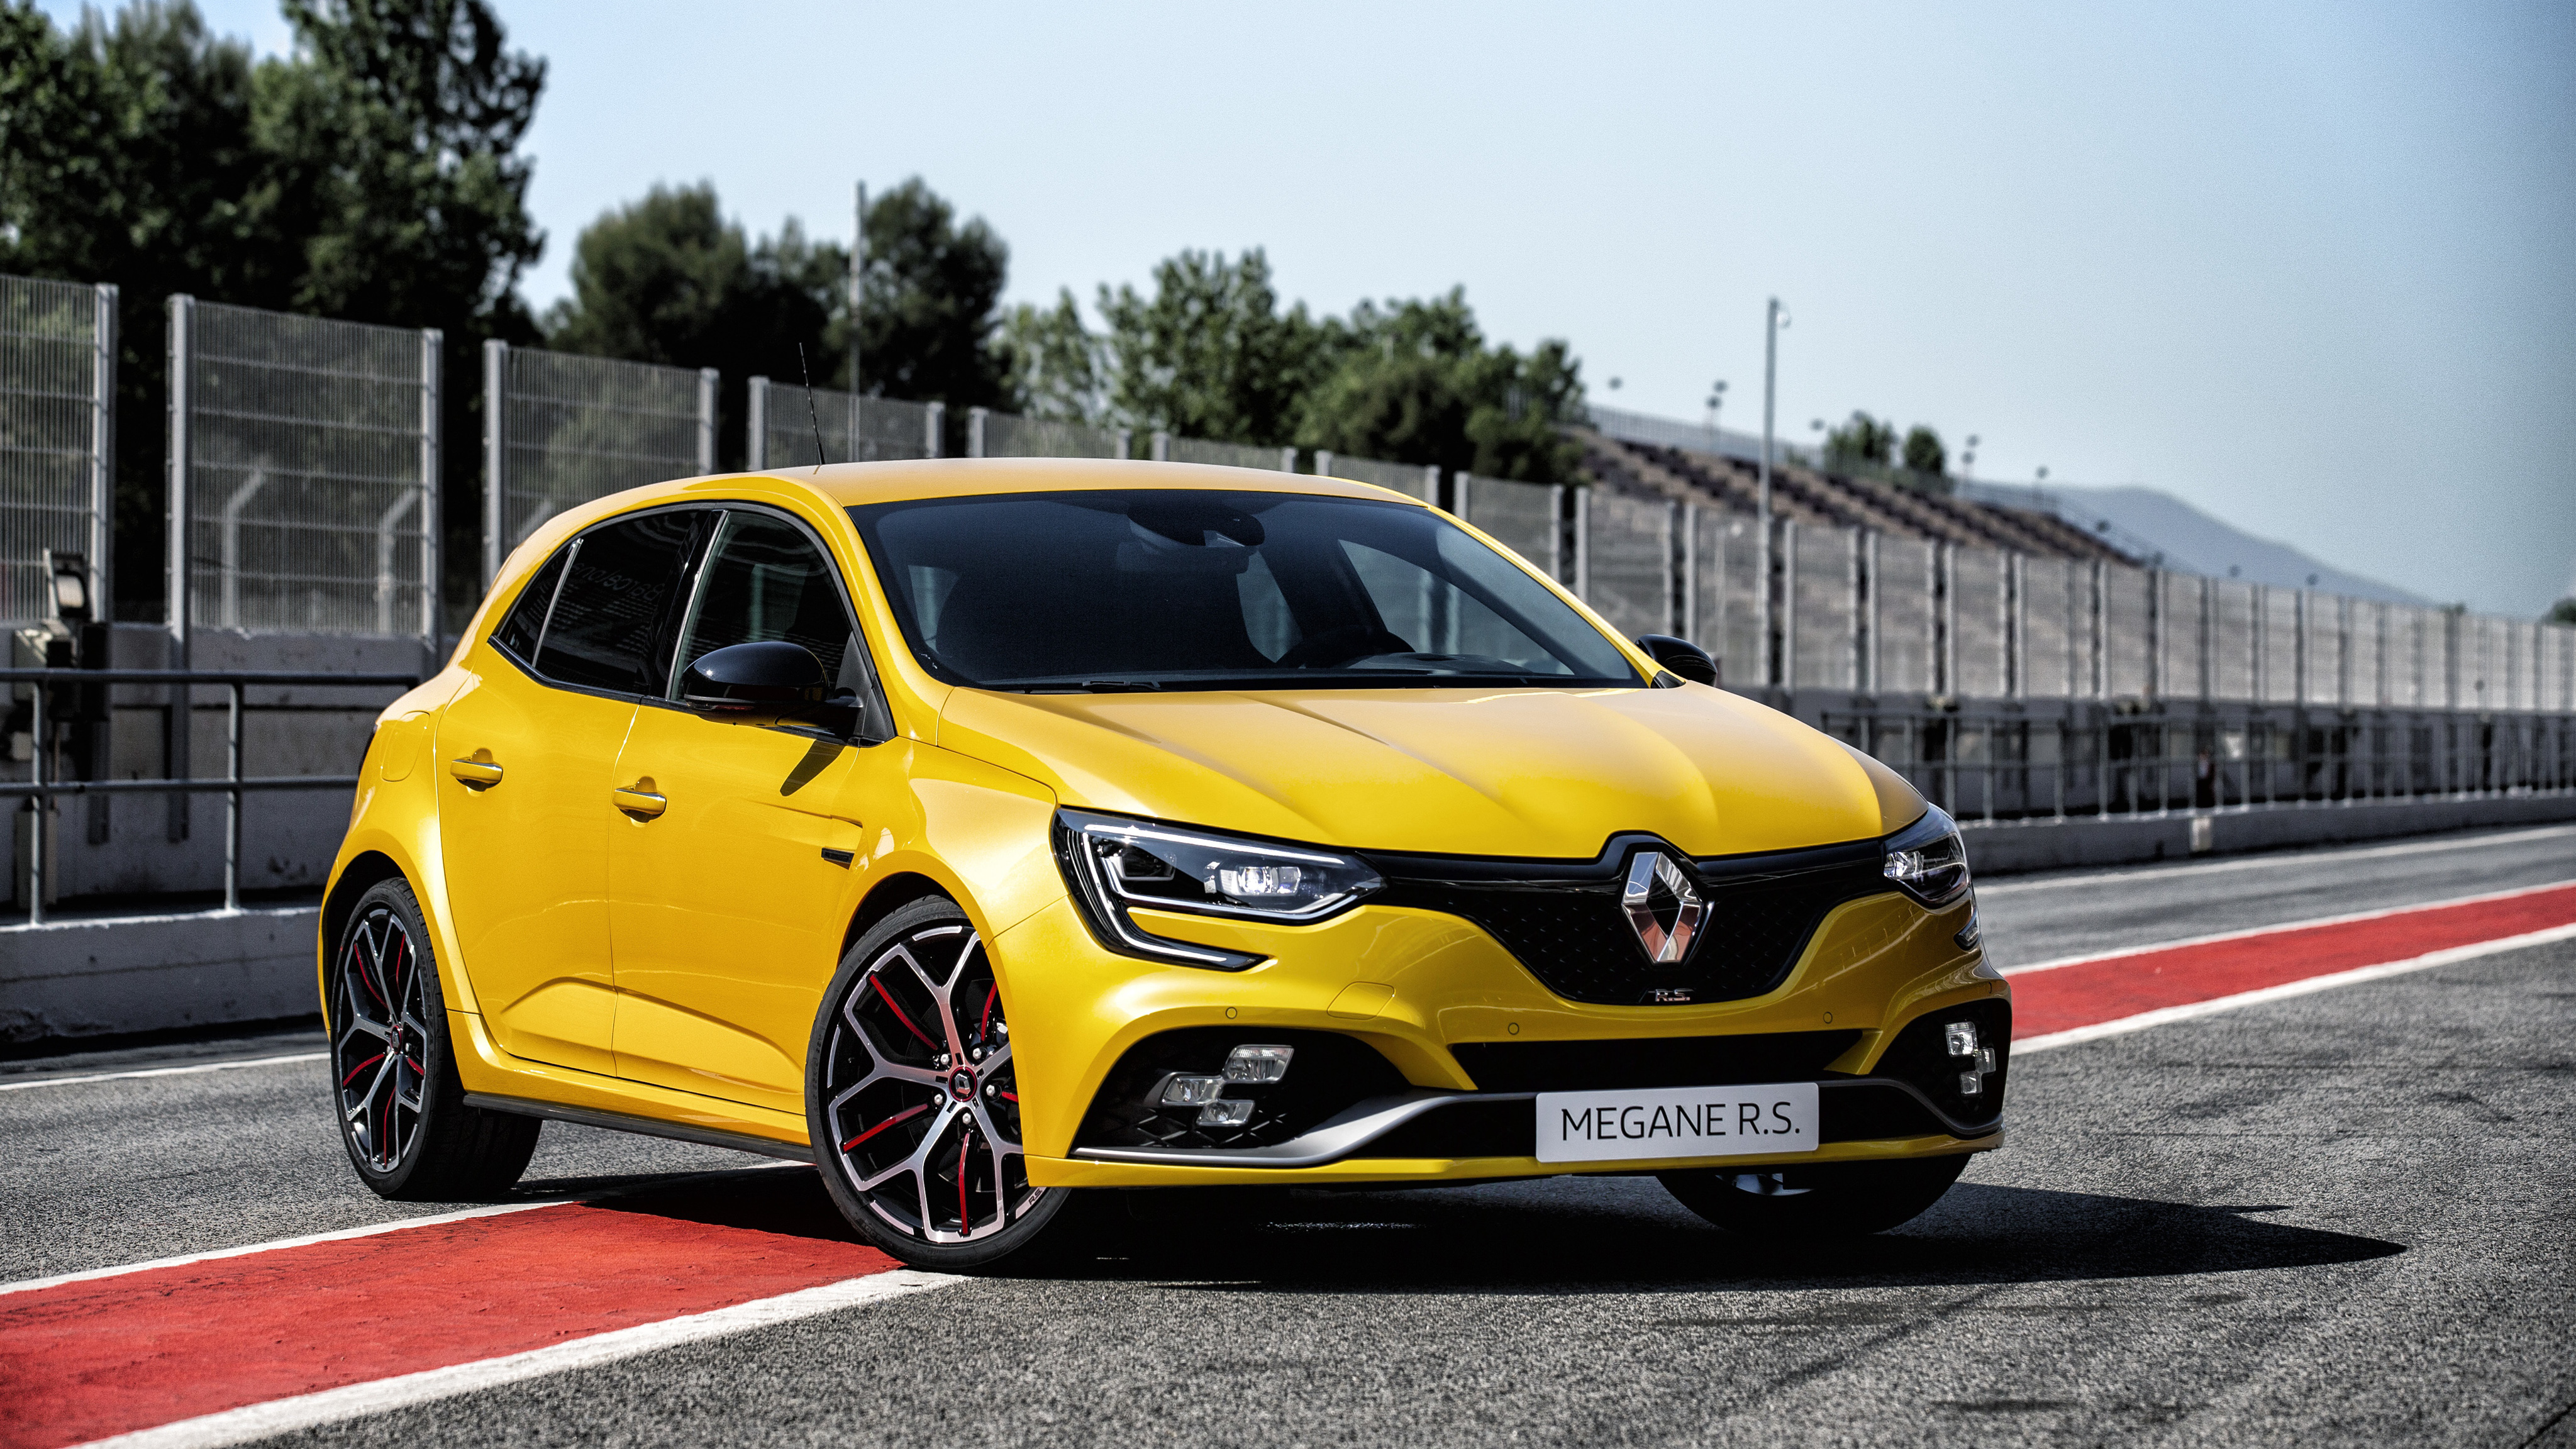 Renault Megane Rs Trophy 4k 2018 Wallpaper Hd Car Wallpapers Id 10855